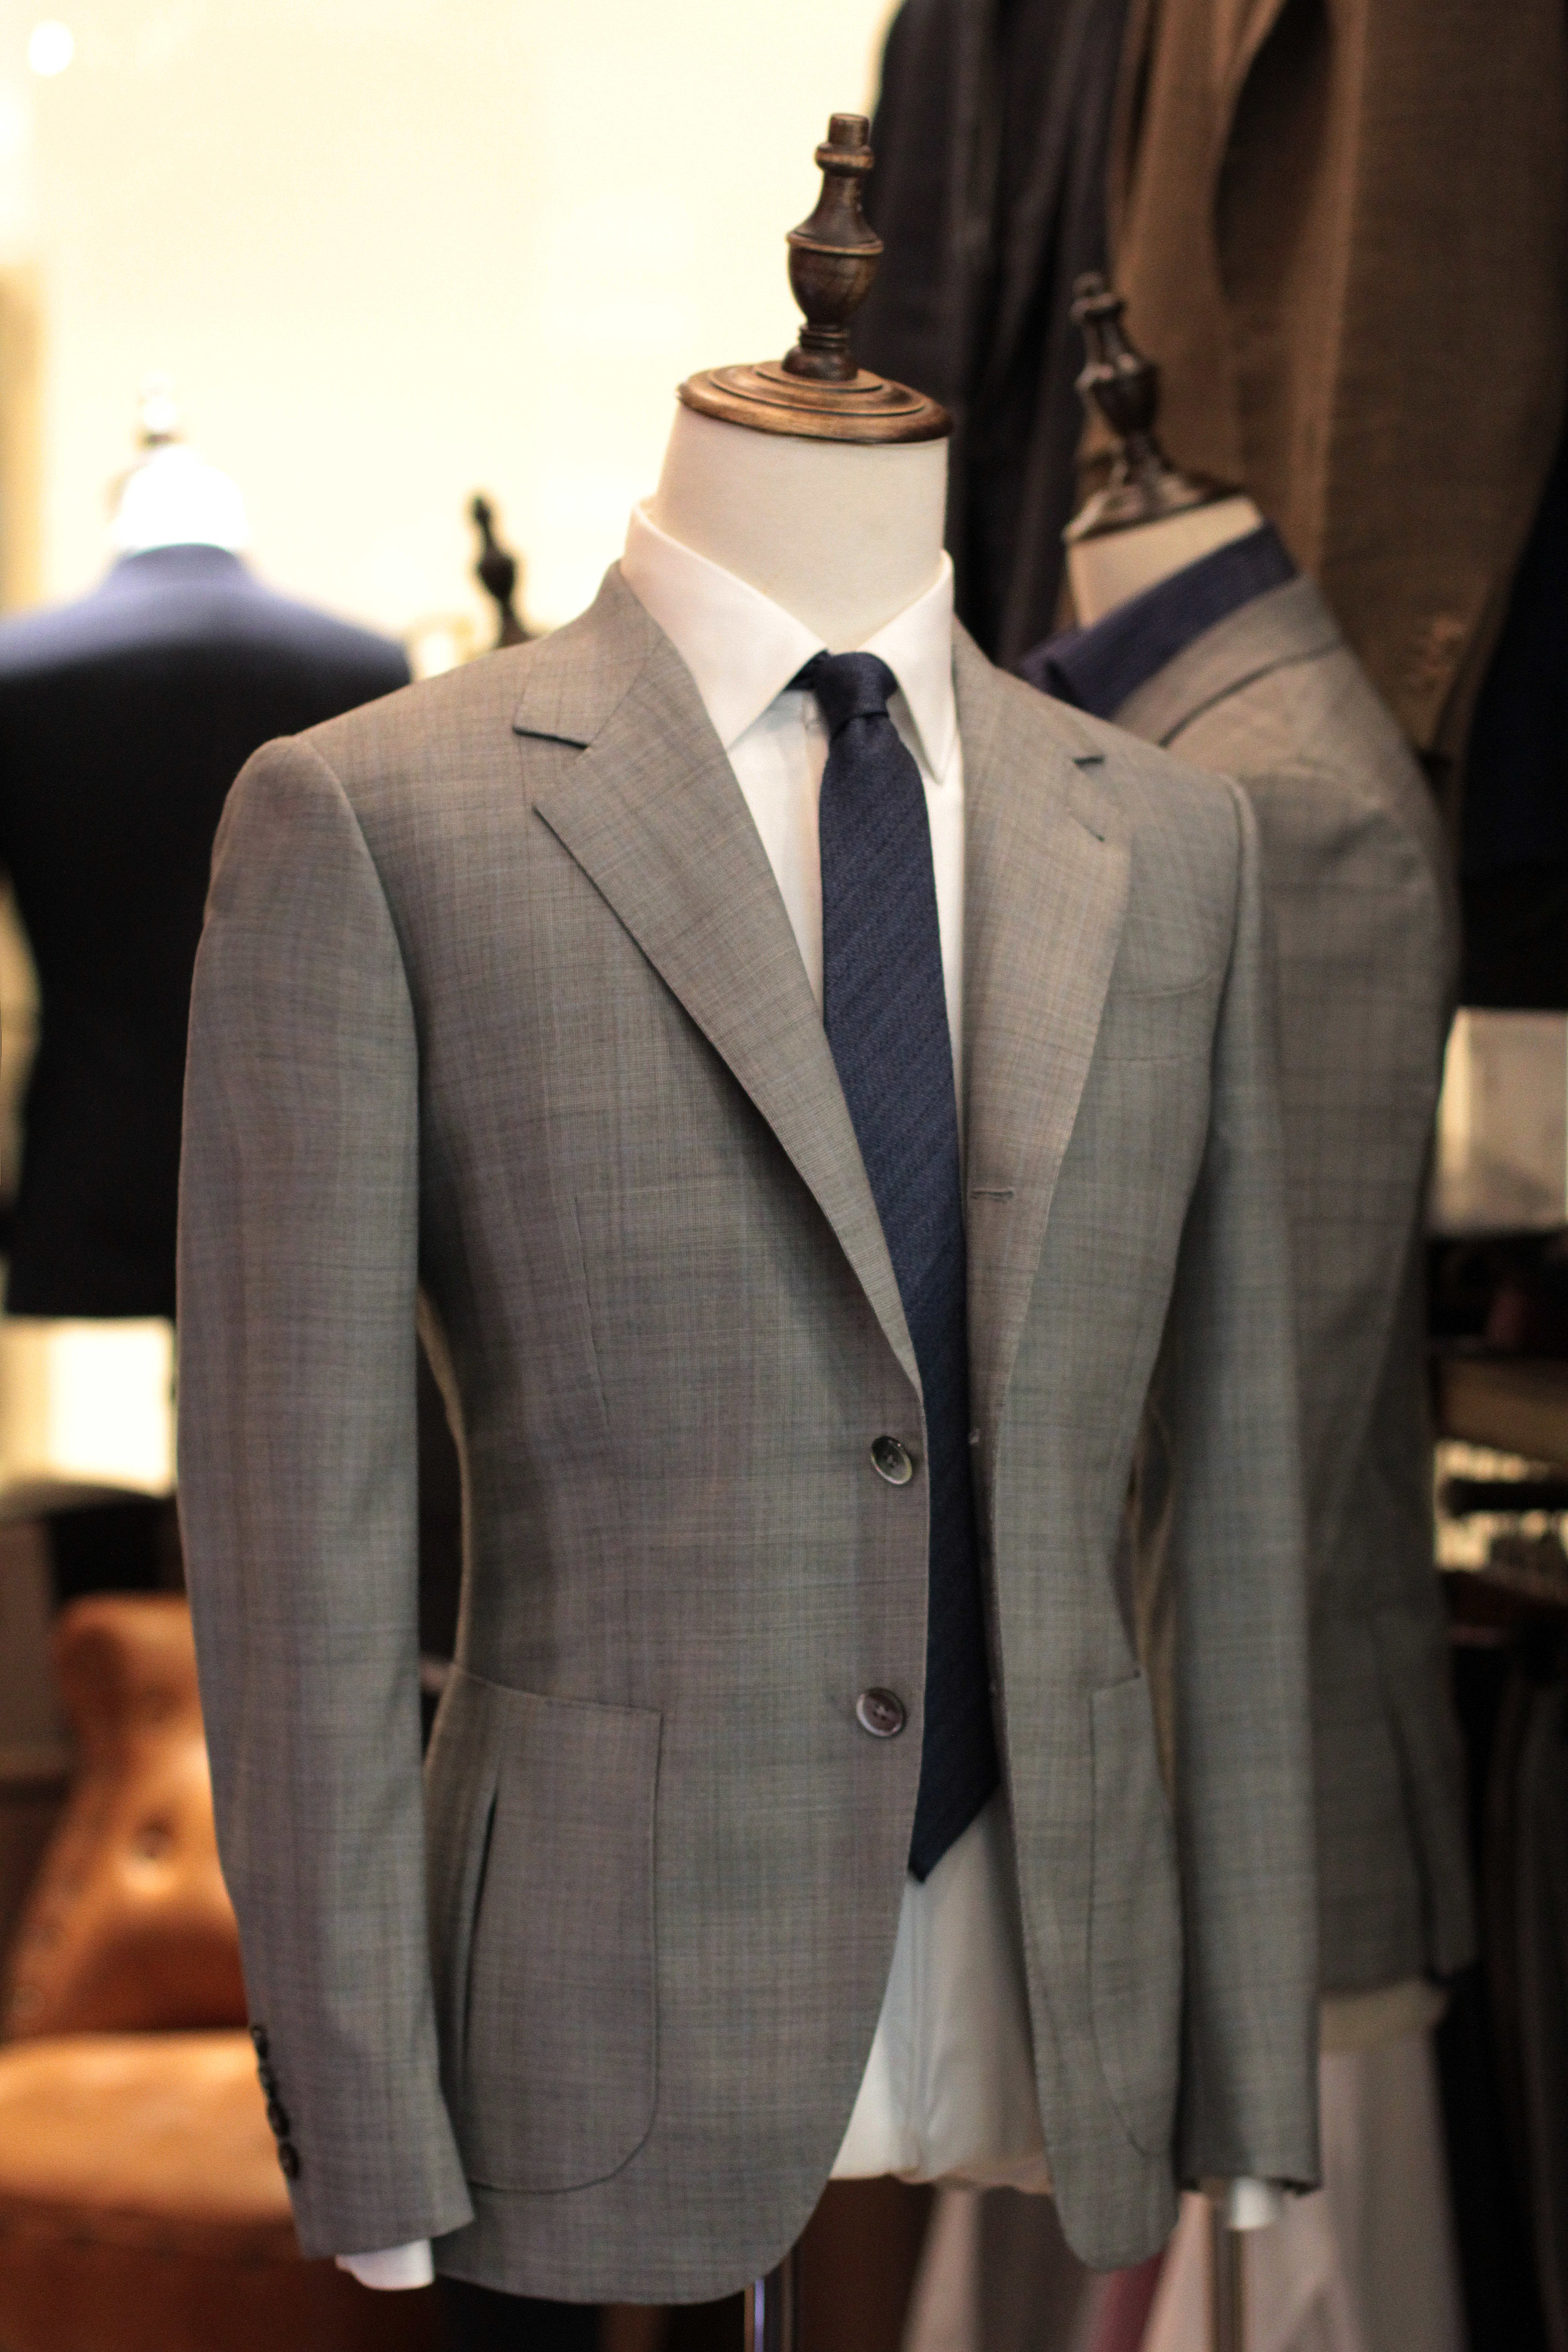 The Novelty Grey Filarte Glen checks prince of wales grey made suits made to measure bespoke suits side.JPG